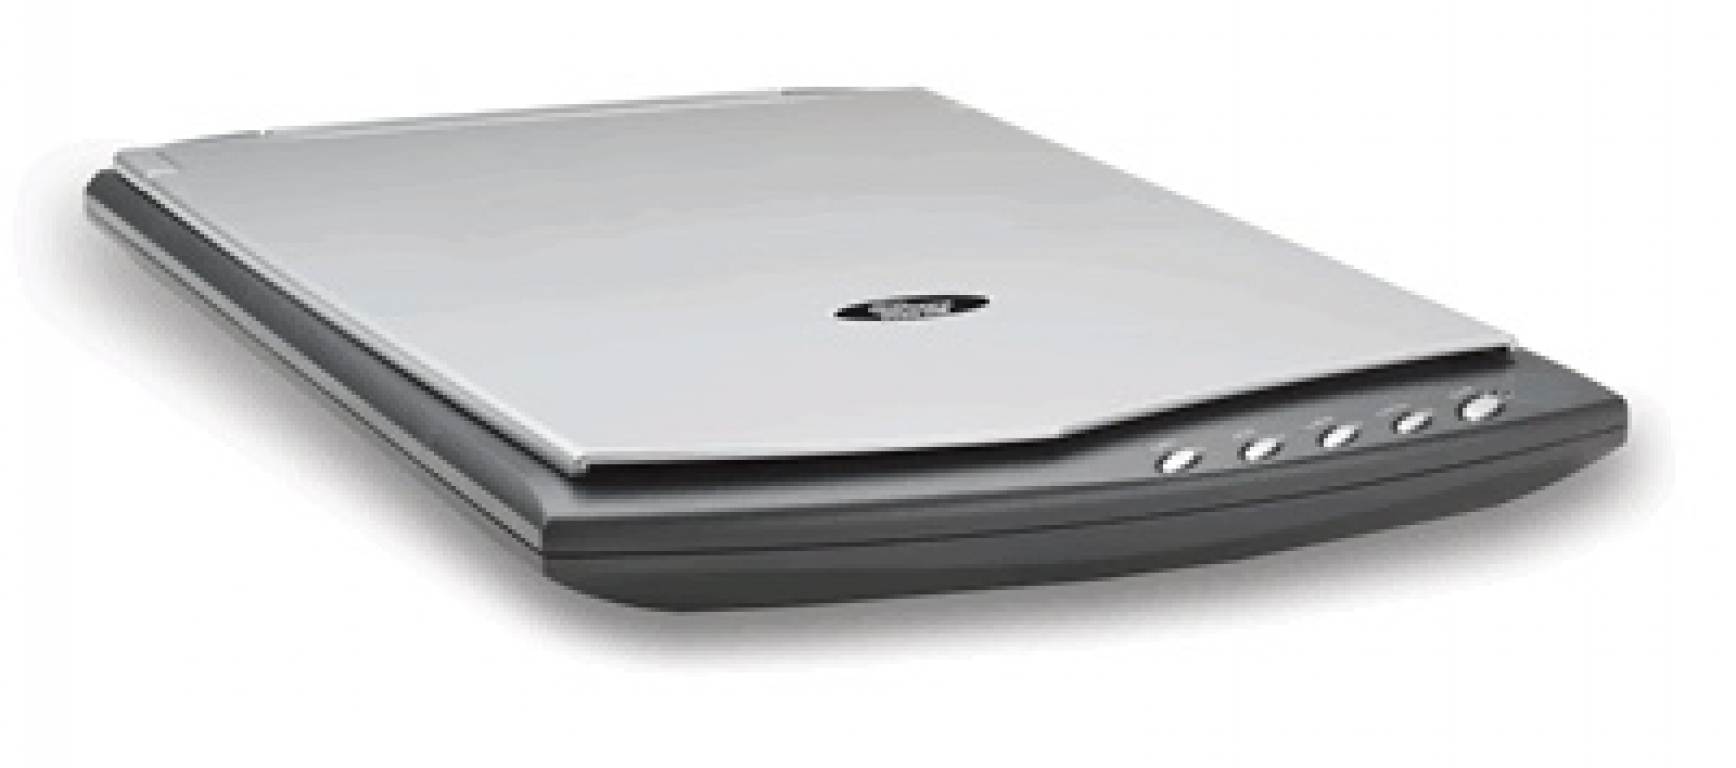 Visioneer OneTouch 7400 USB Photo Scanner | Visioneer